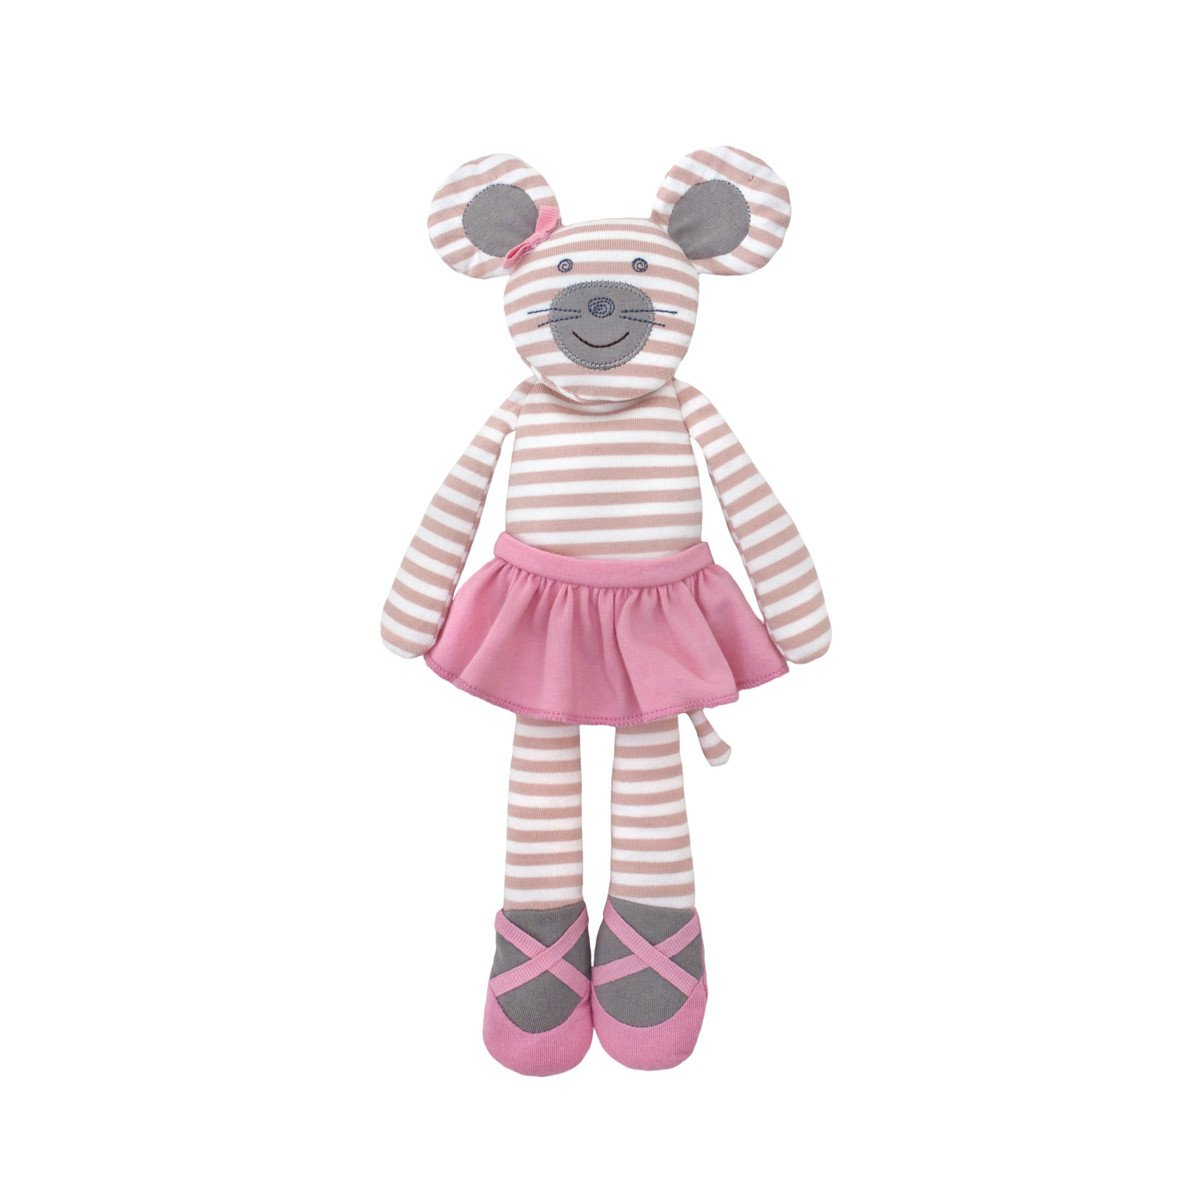 Apple Park Organic Plush Toy Apple Park Organic Baby Gifts Ballerina Mouse at Little Earth Nest Eco Shop